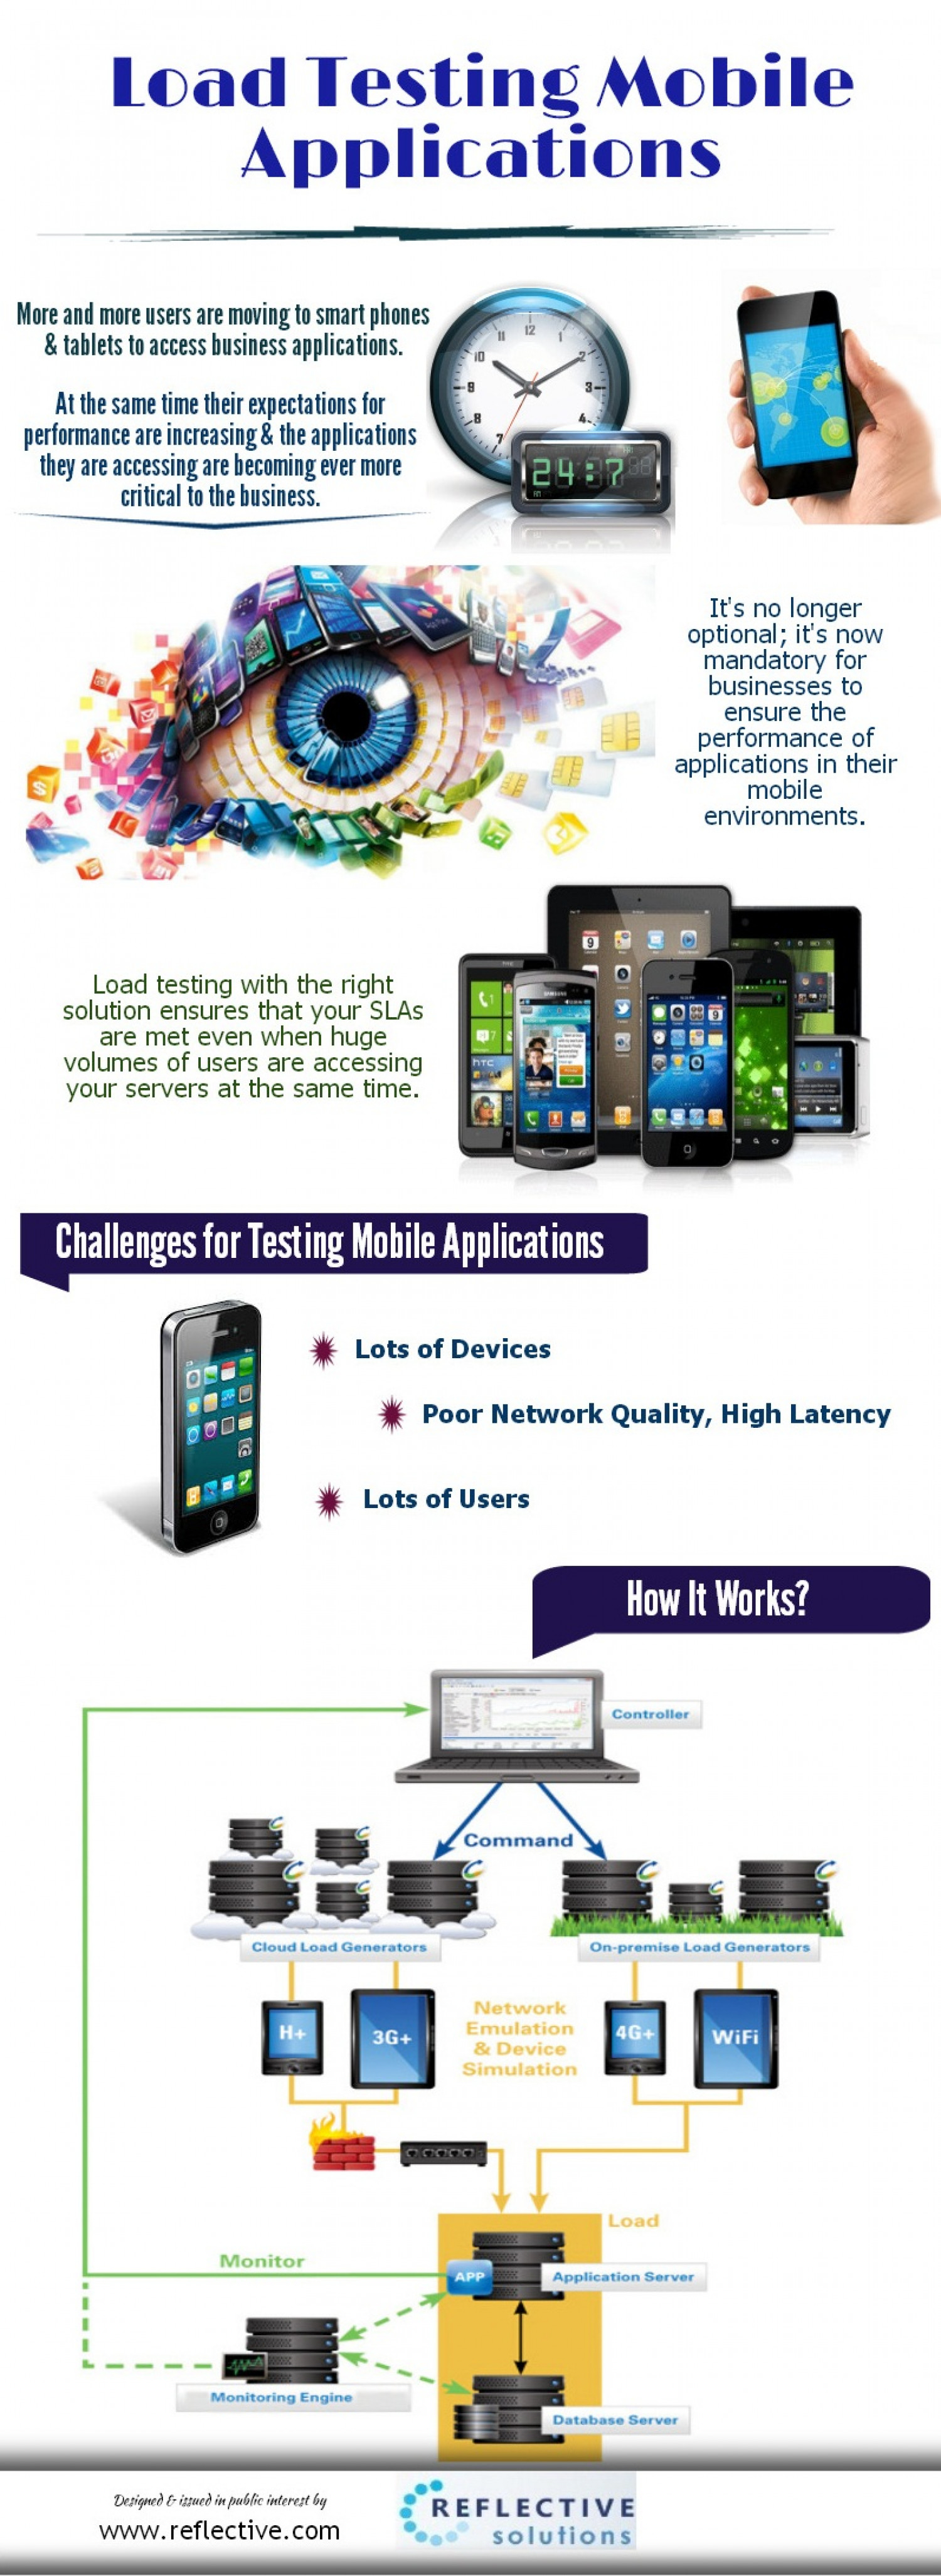 Load Testing Mobile Applications Infographic